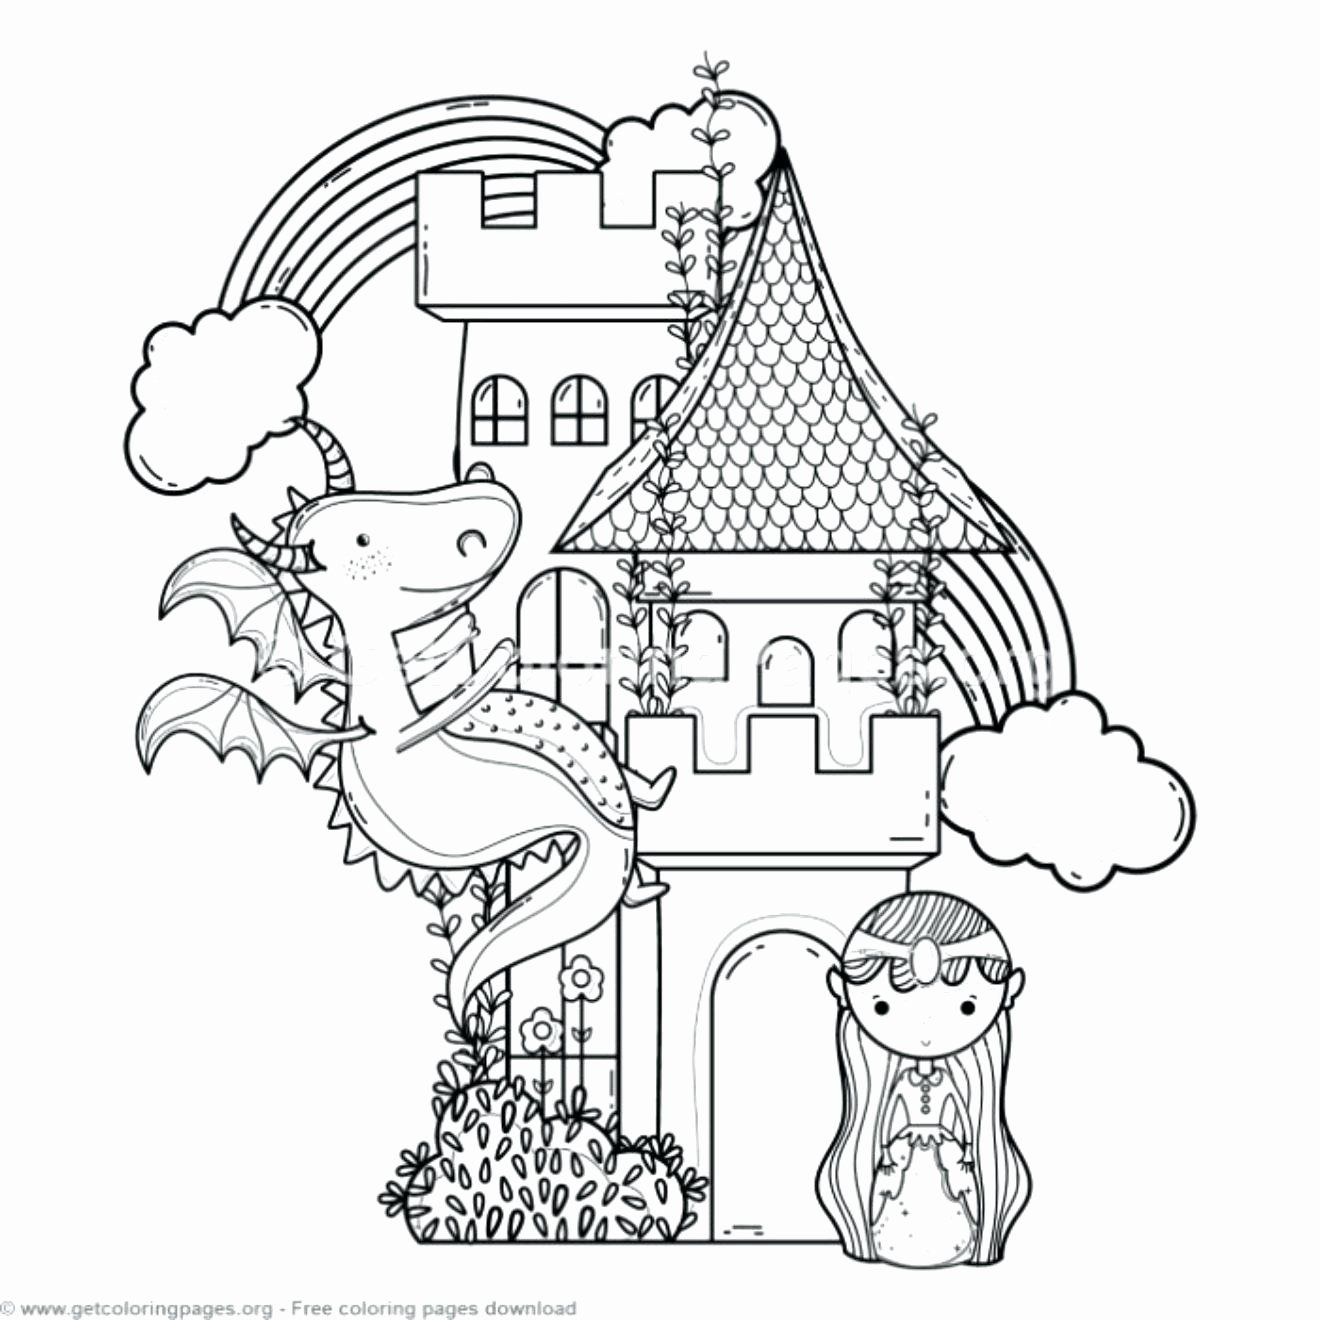 Detailed Dragon Coloring Pages Luxury Castle Coloring Pictures Princess Meltingclock Dragon Coloring Page Fairy Coloring Pages Castle Coloring Page